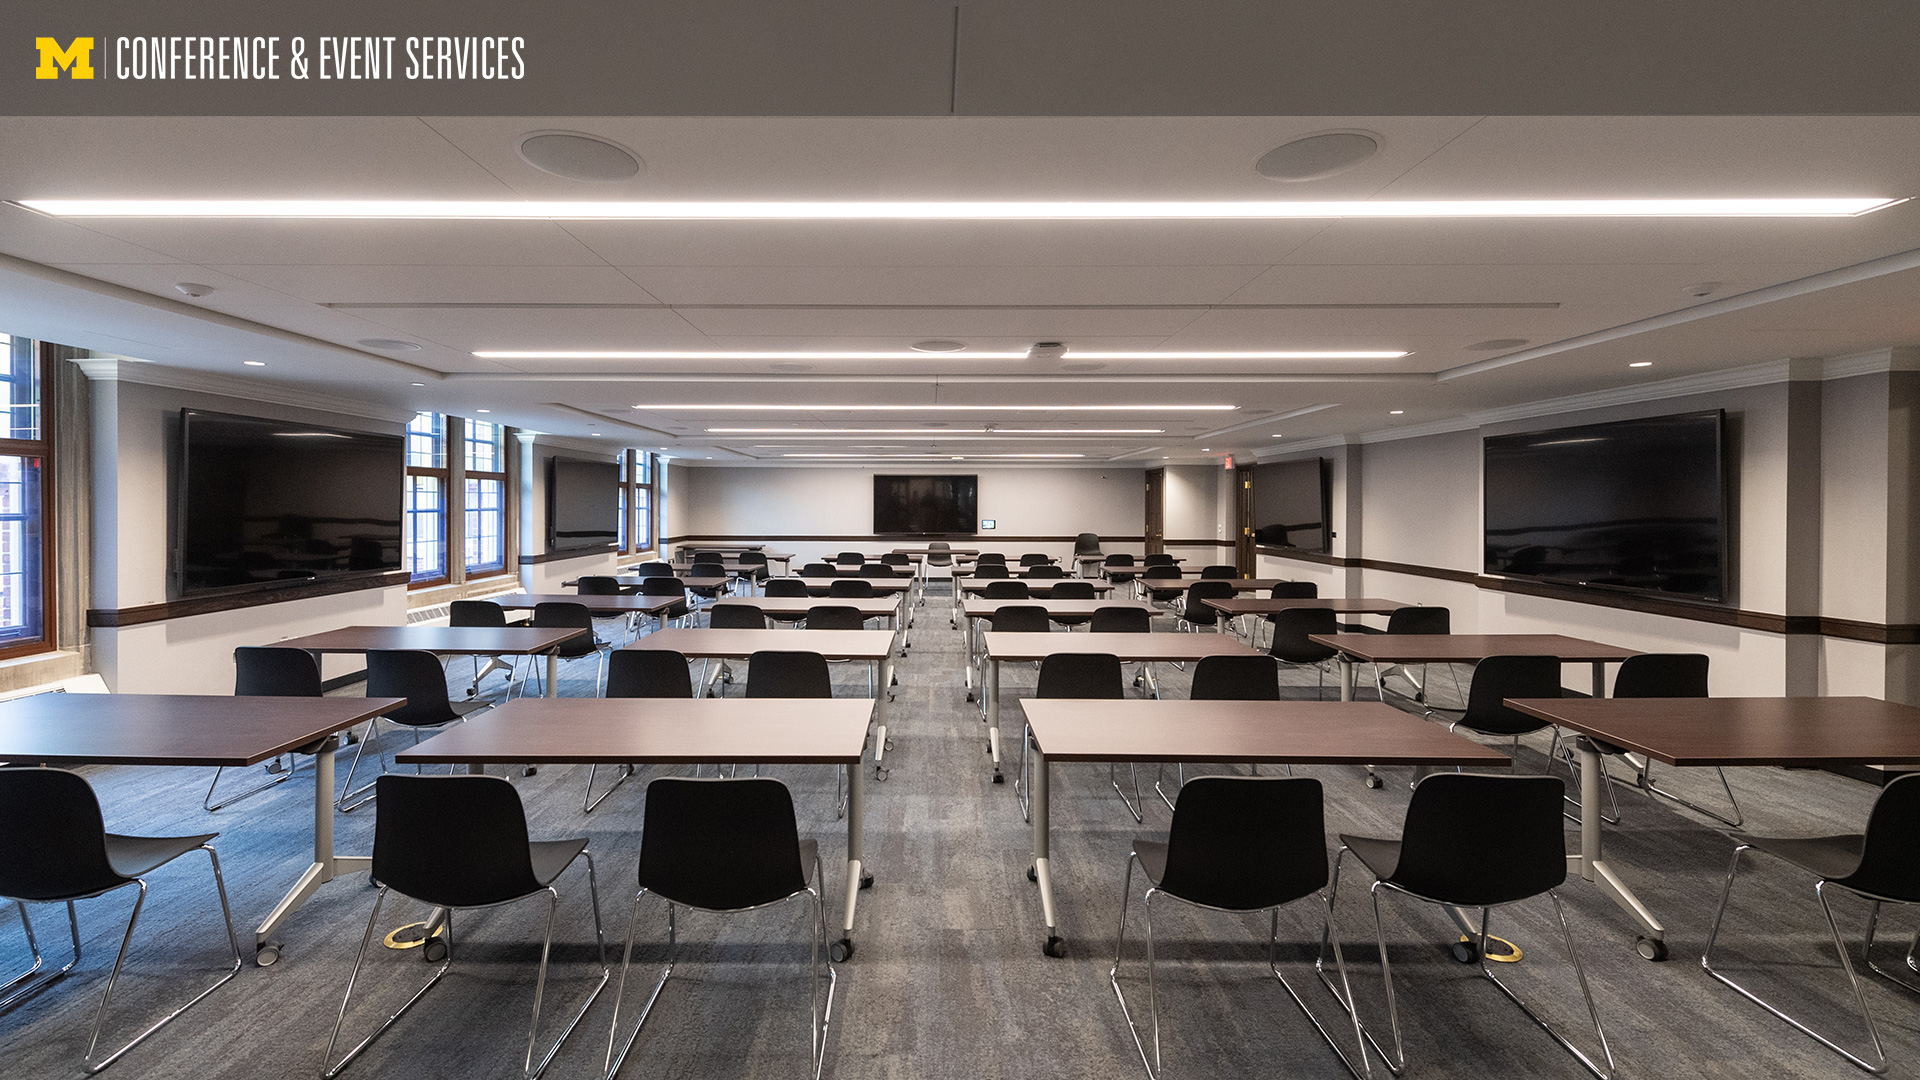 Custom Backgrounds for Zoom Meetings • Conference & Event